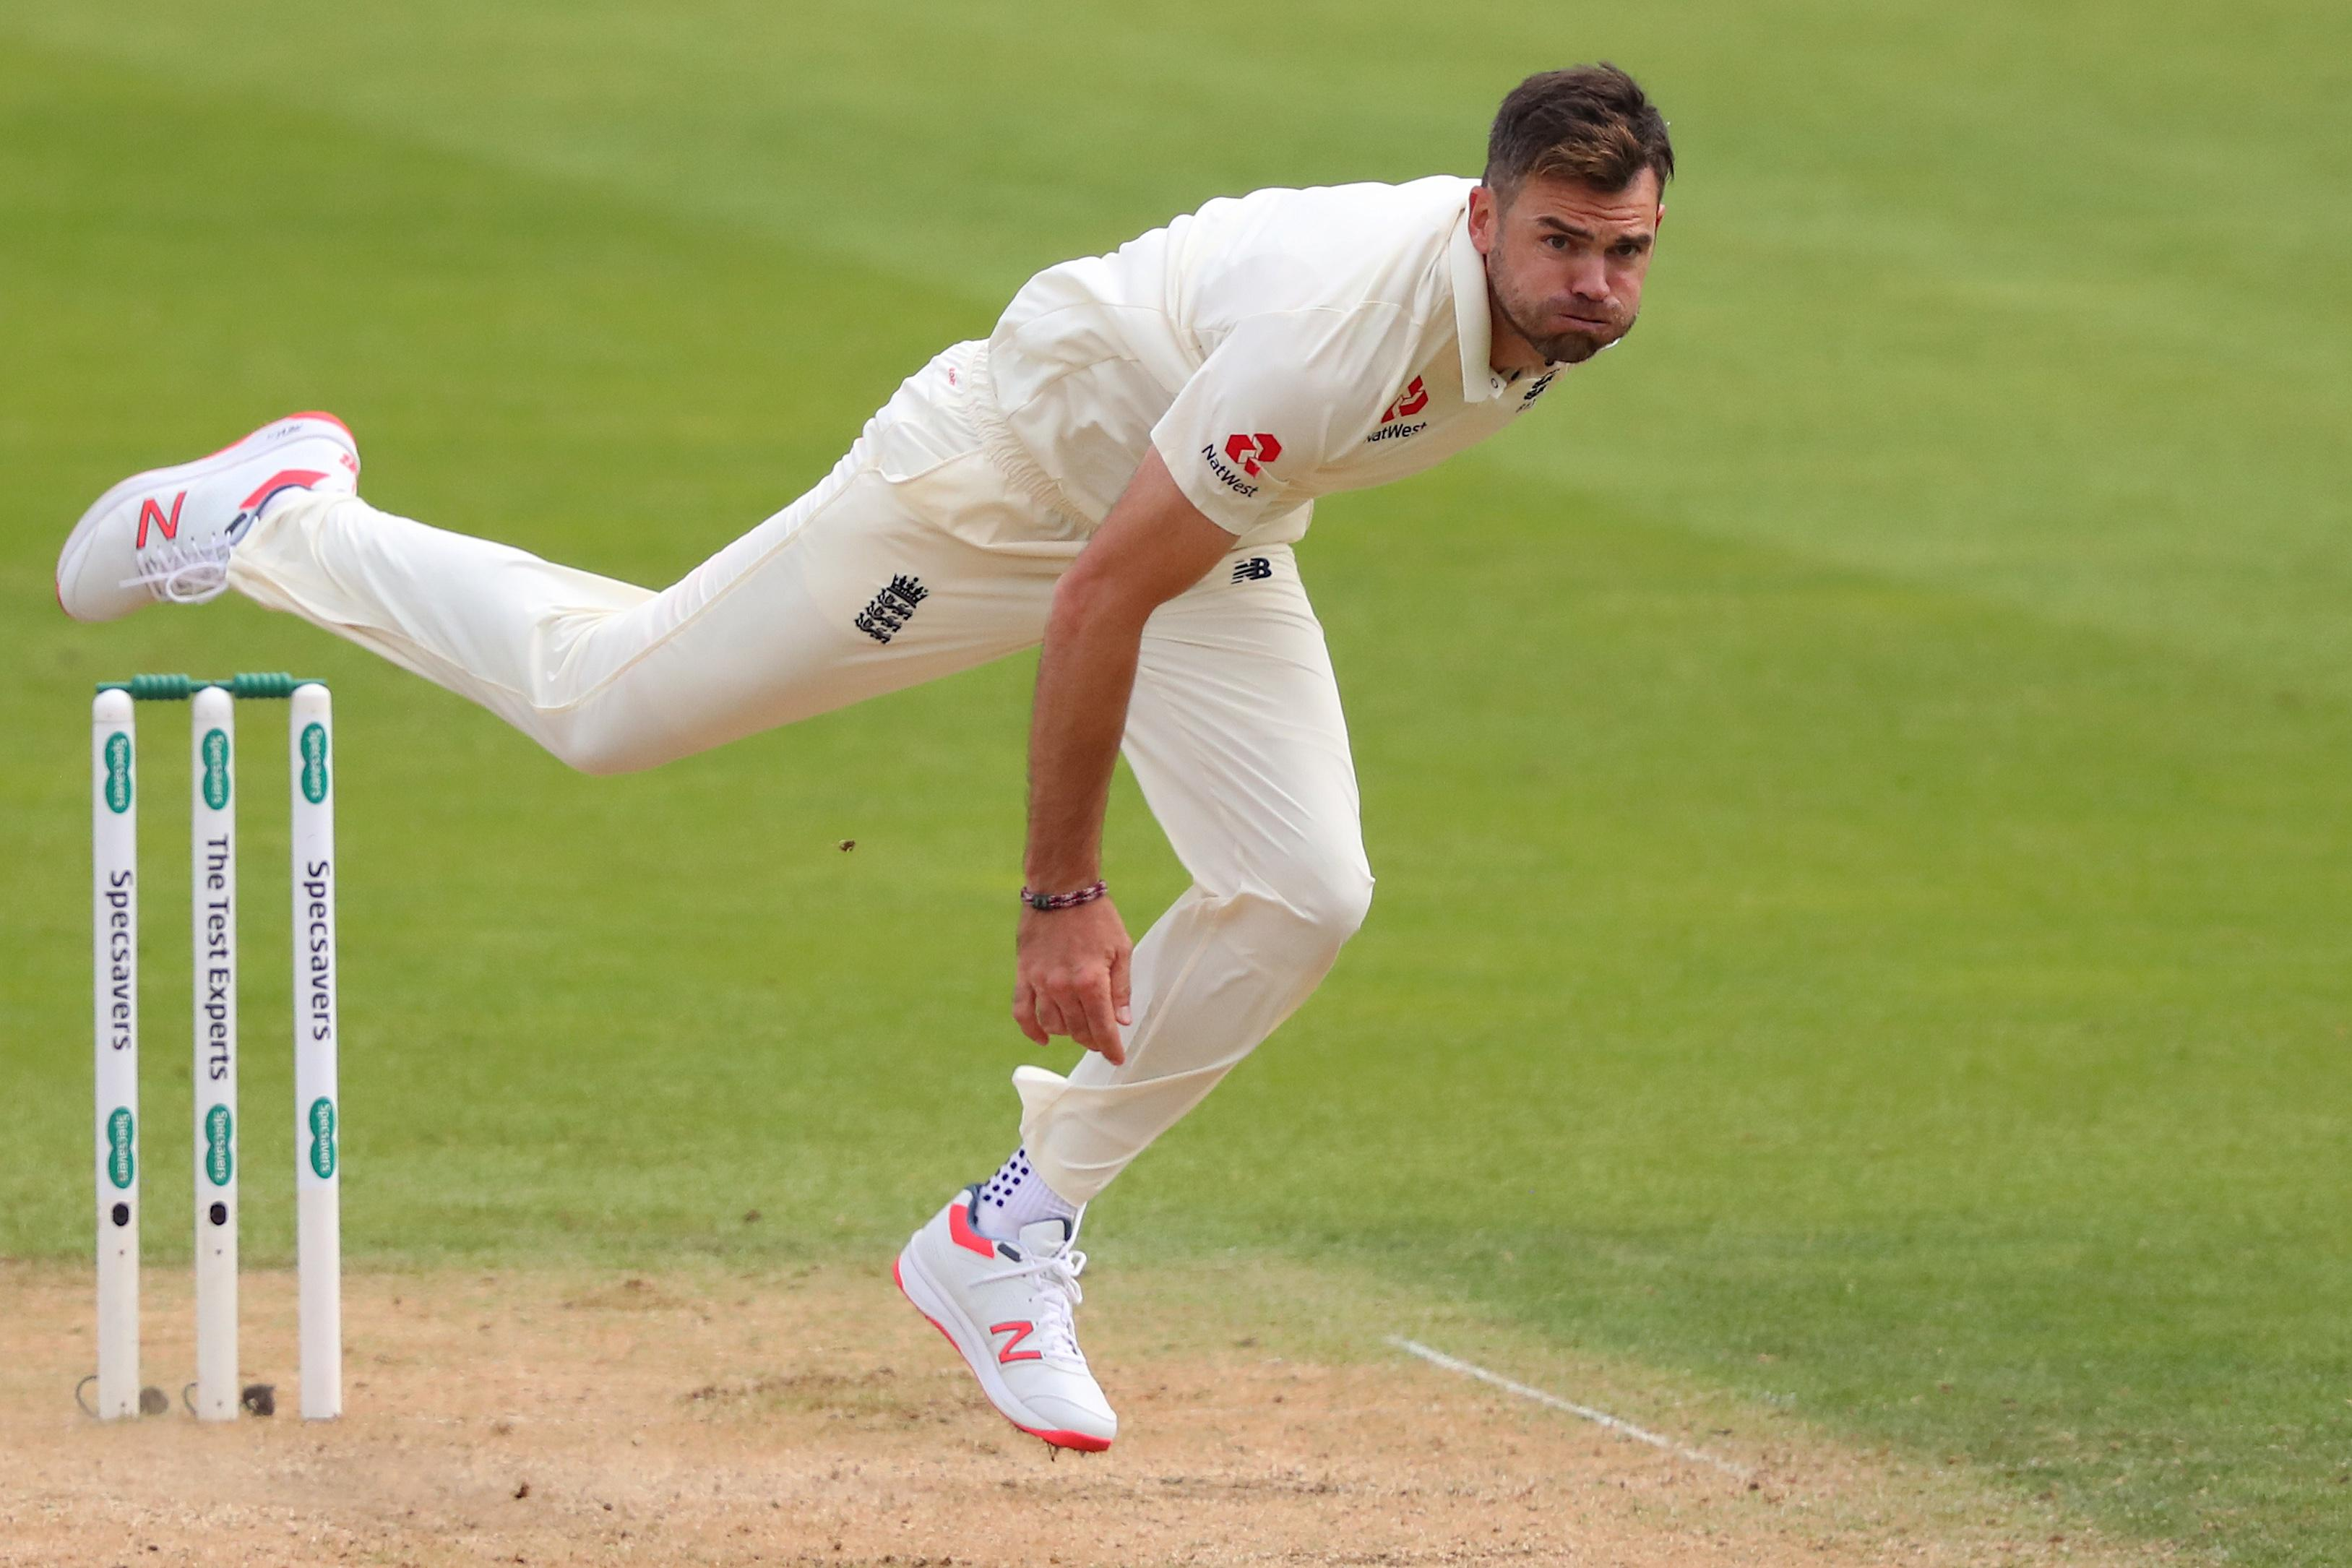 Anderson may be 36 but does not intend to let up anytime soon as he looks to hunt down 600 wickets with the Ashes on the horizon